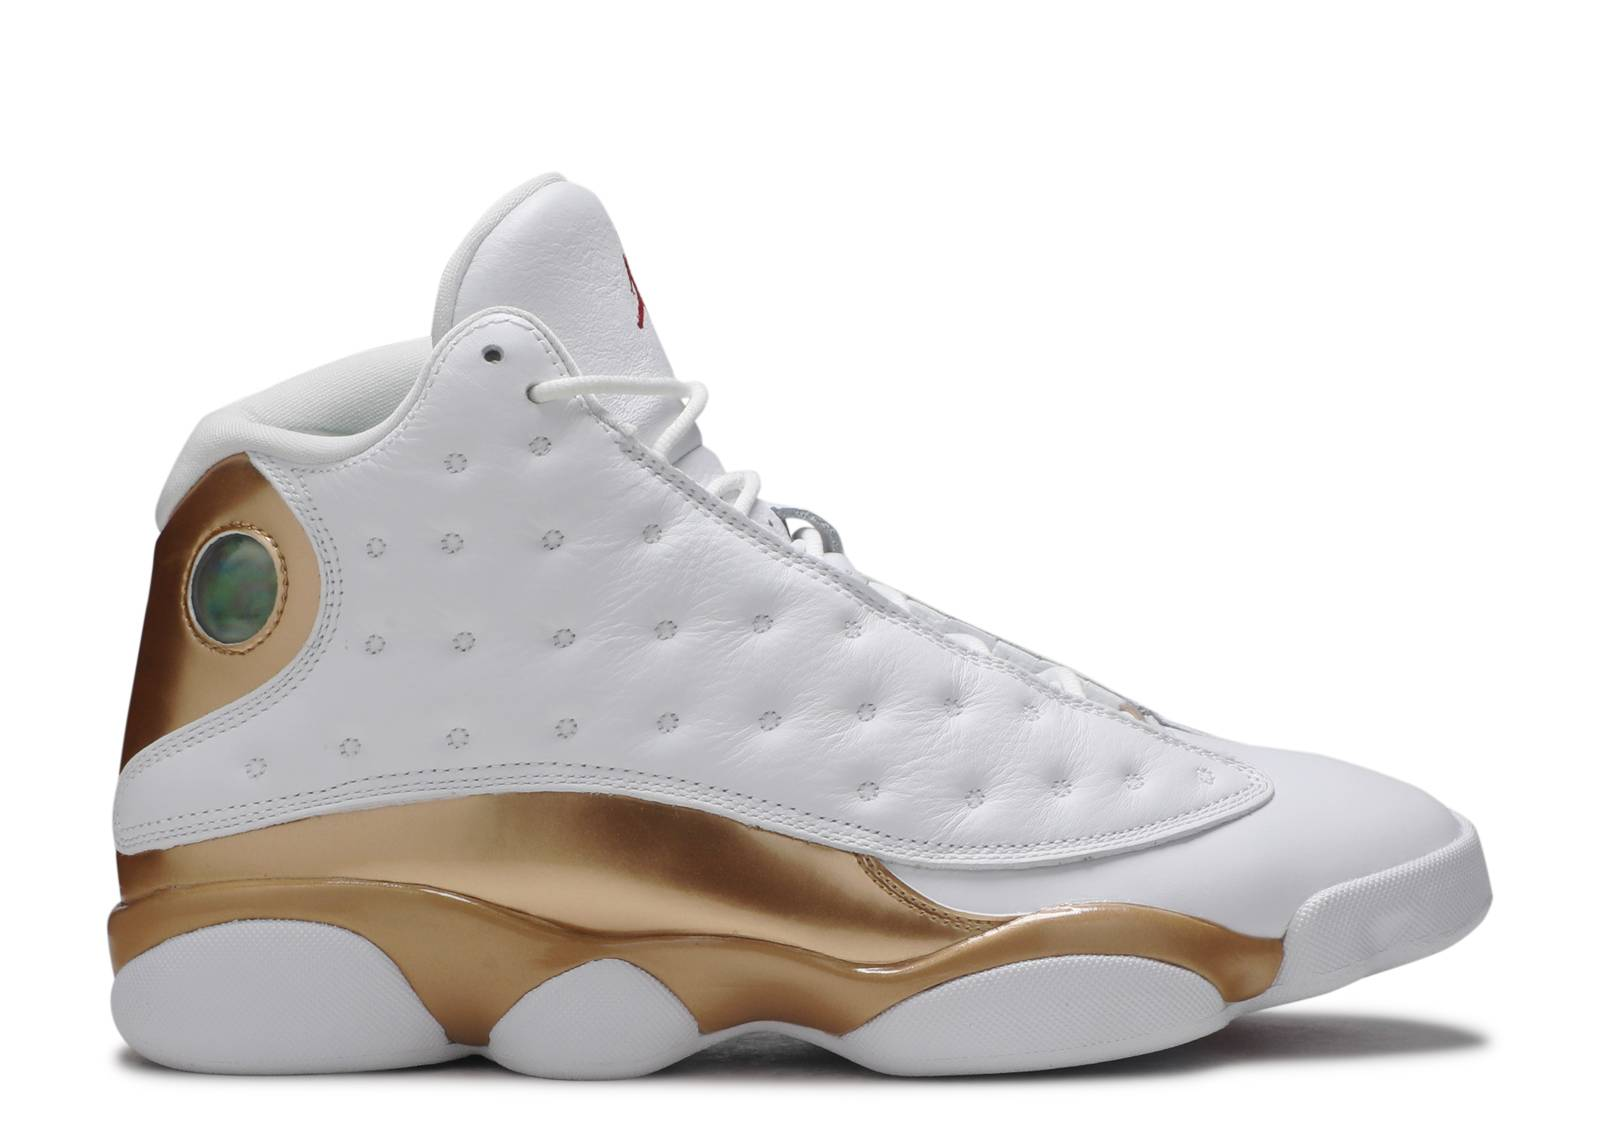 jordan retro 13 white gold